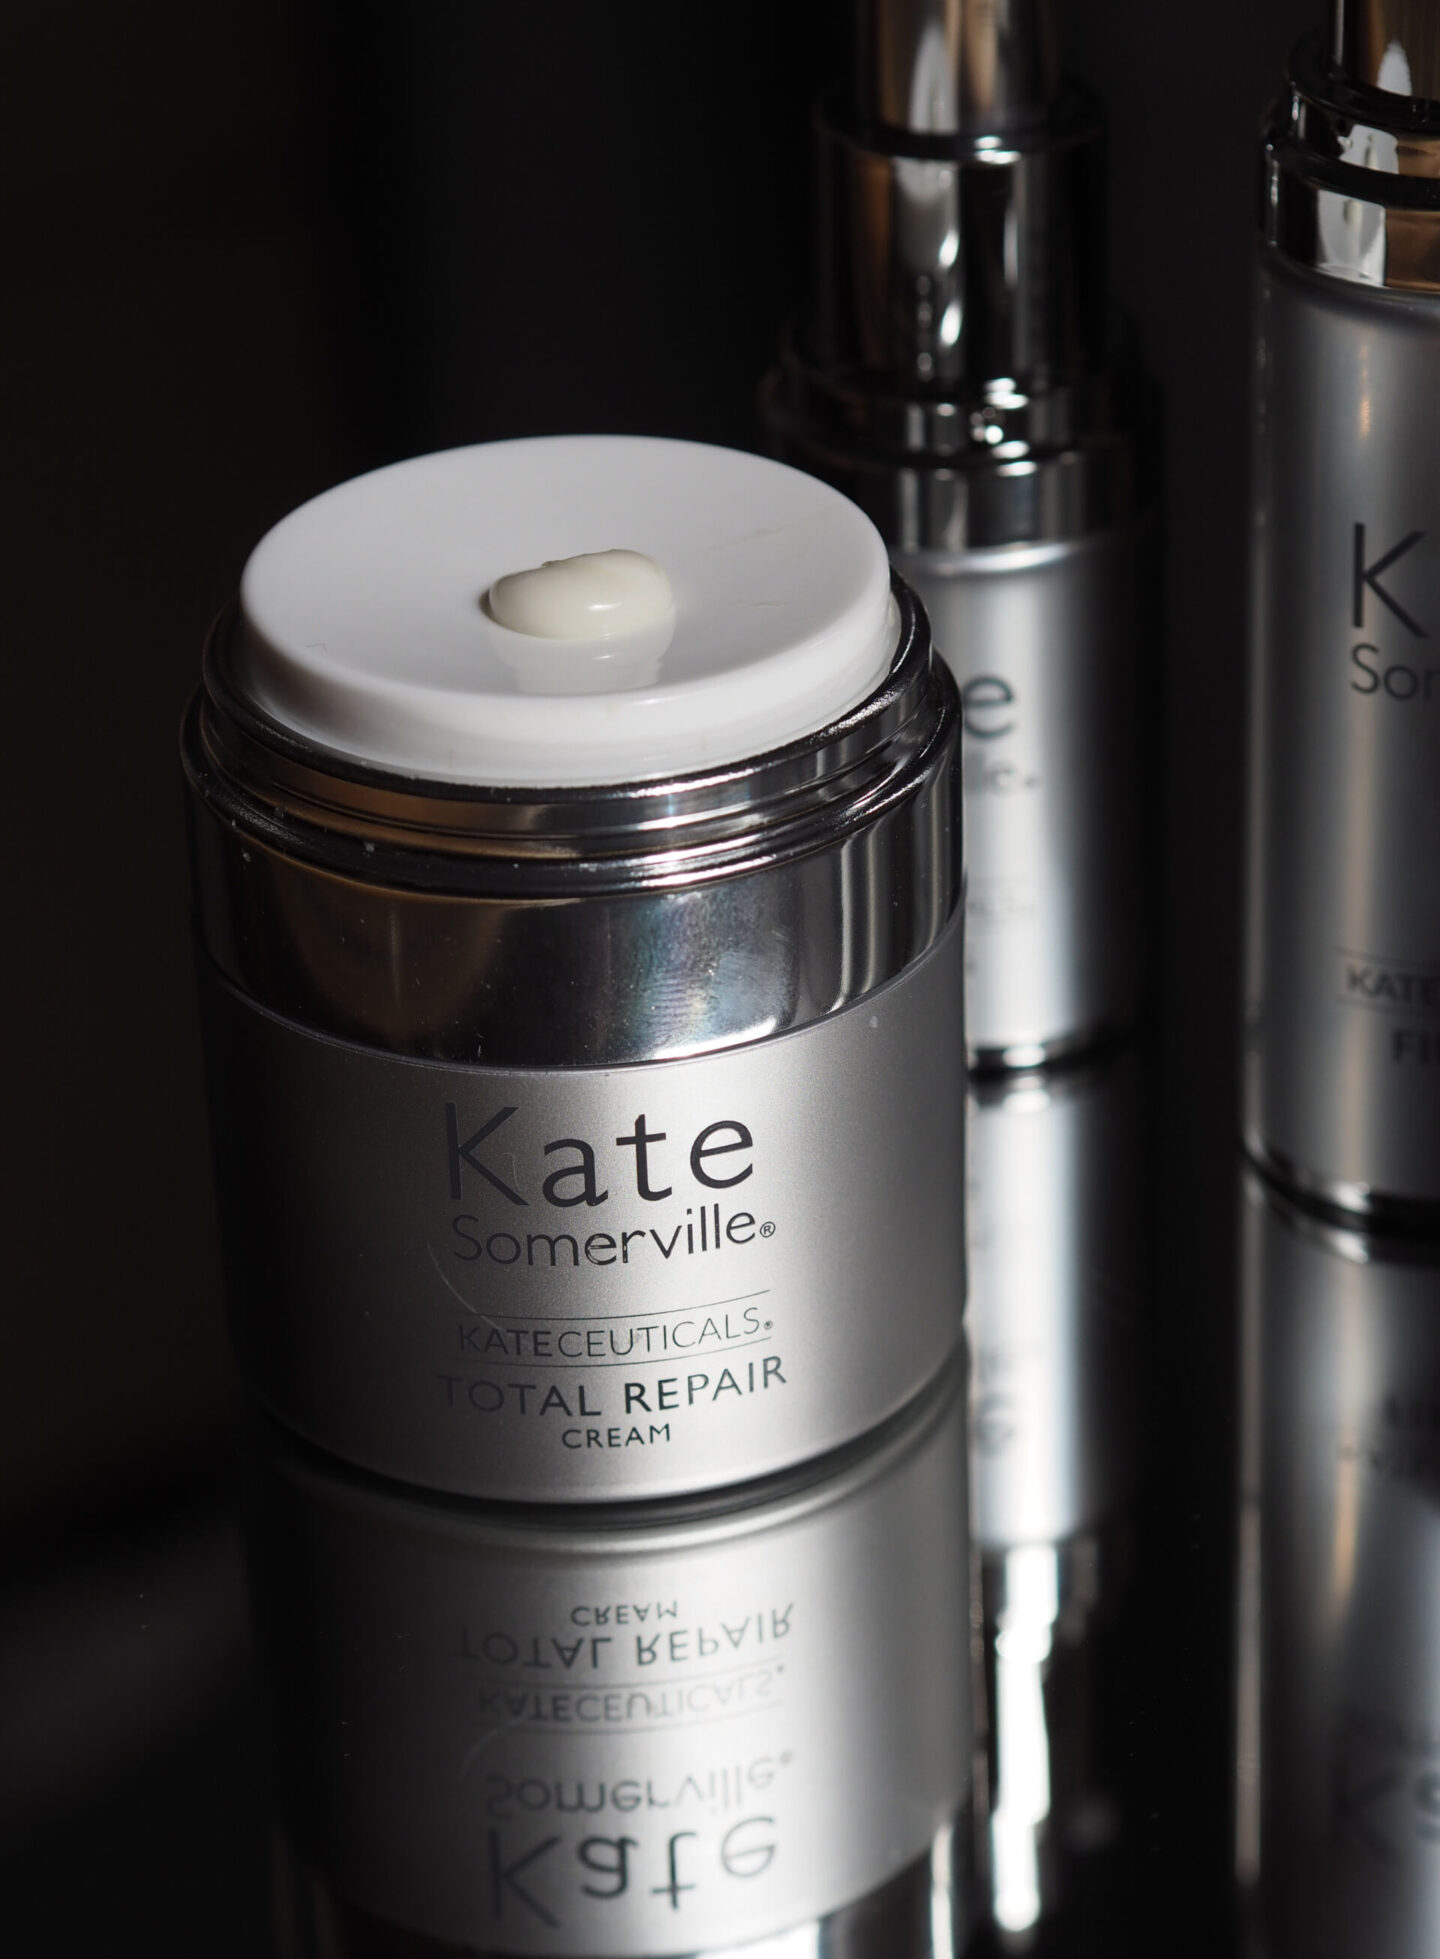 Kate Somerville Kateceuticals review